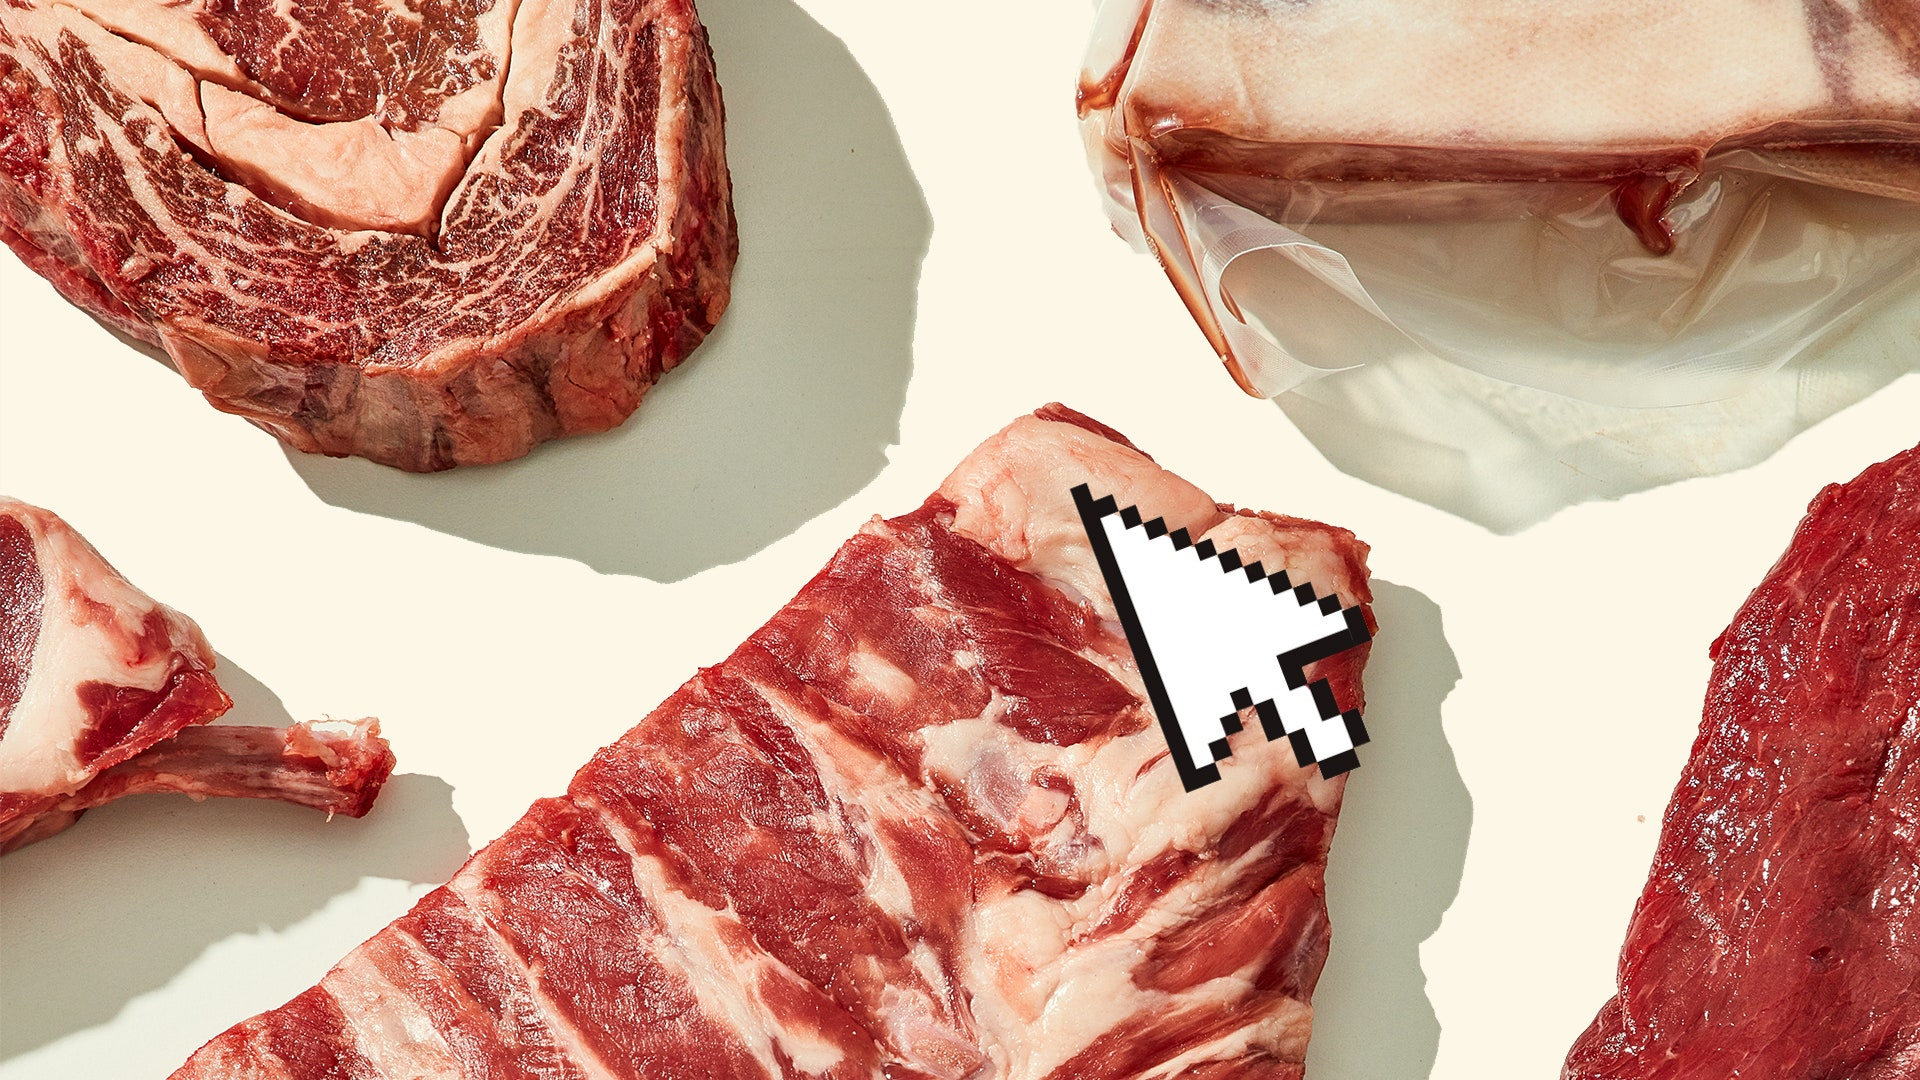 Where to Order Meat Online - from bon appétit